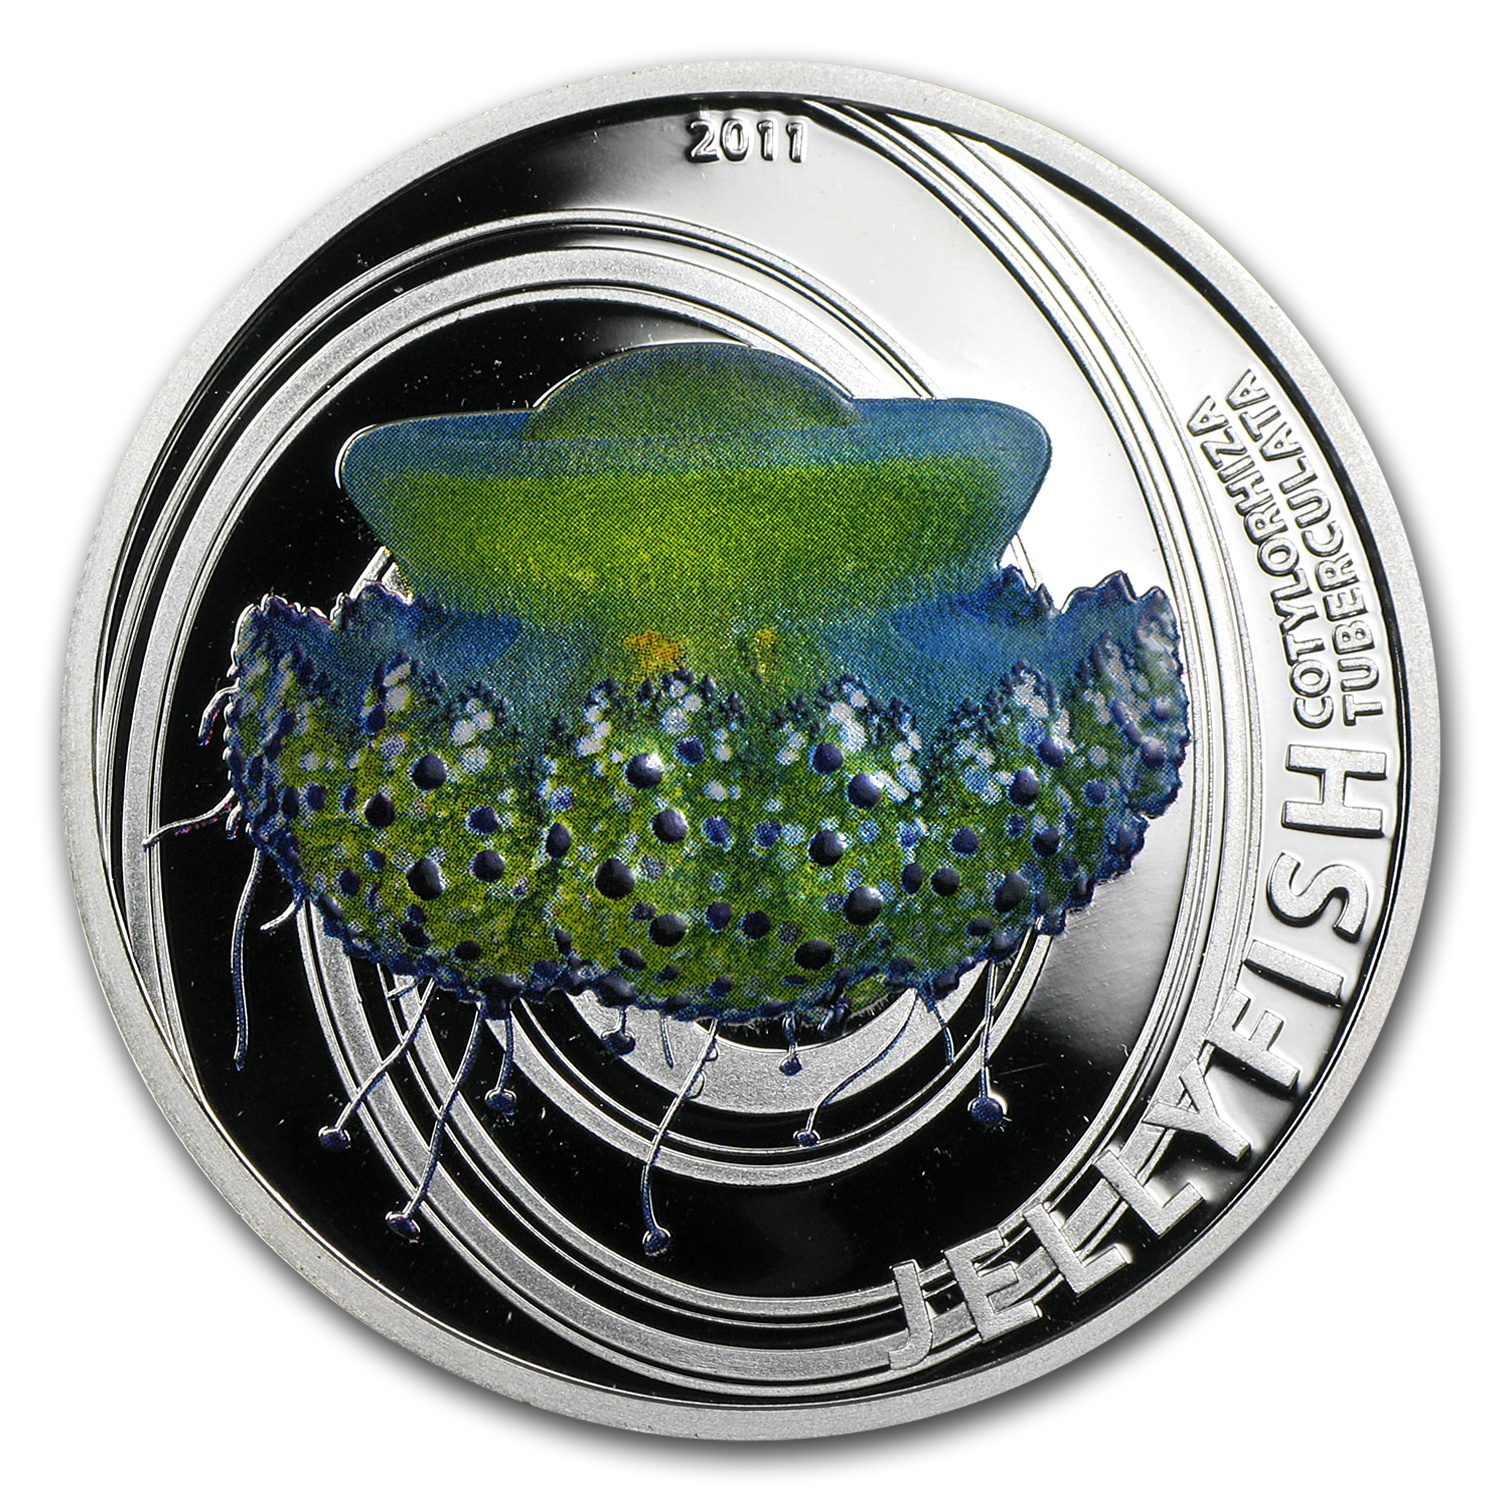 2011 Pitcairn Islands Silver $2 Jellyfish Cotylorhiza Tubercula